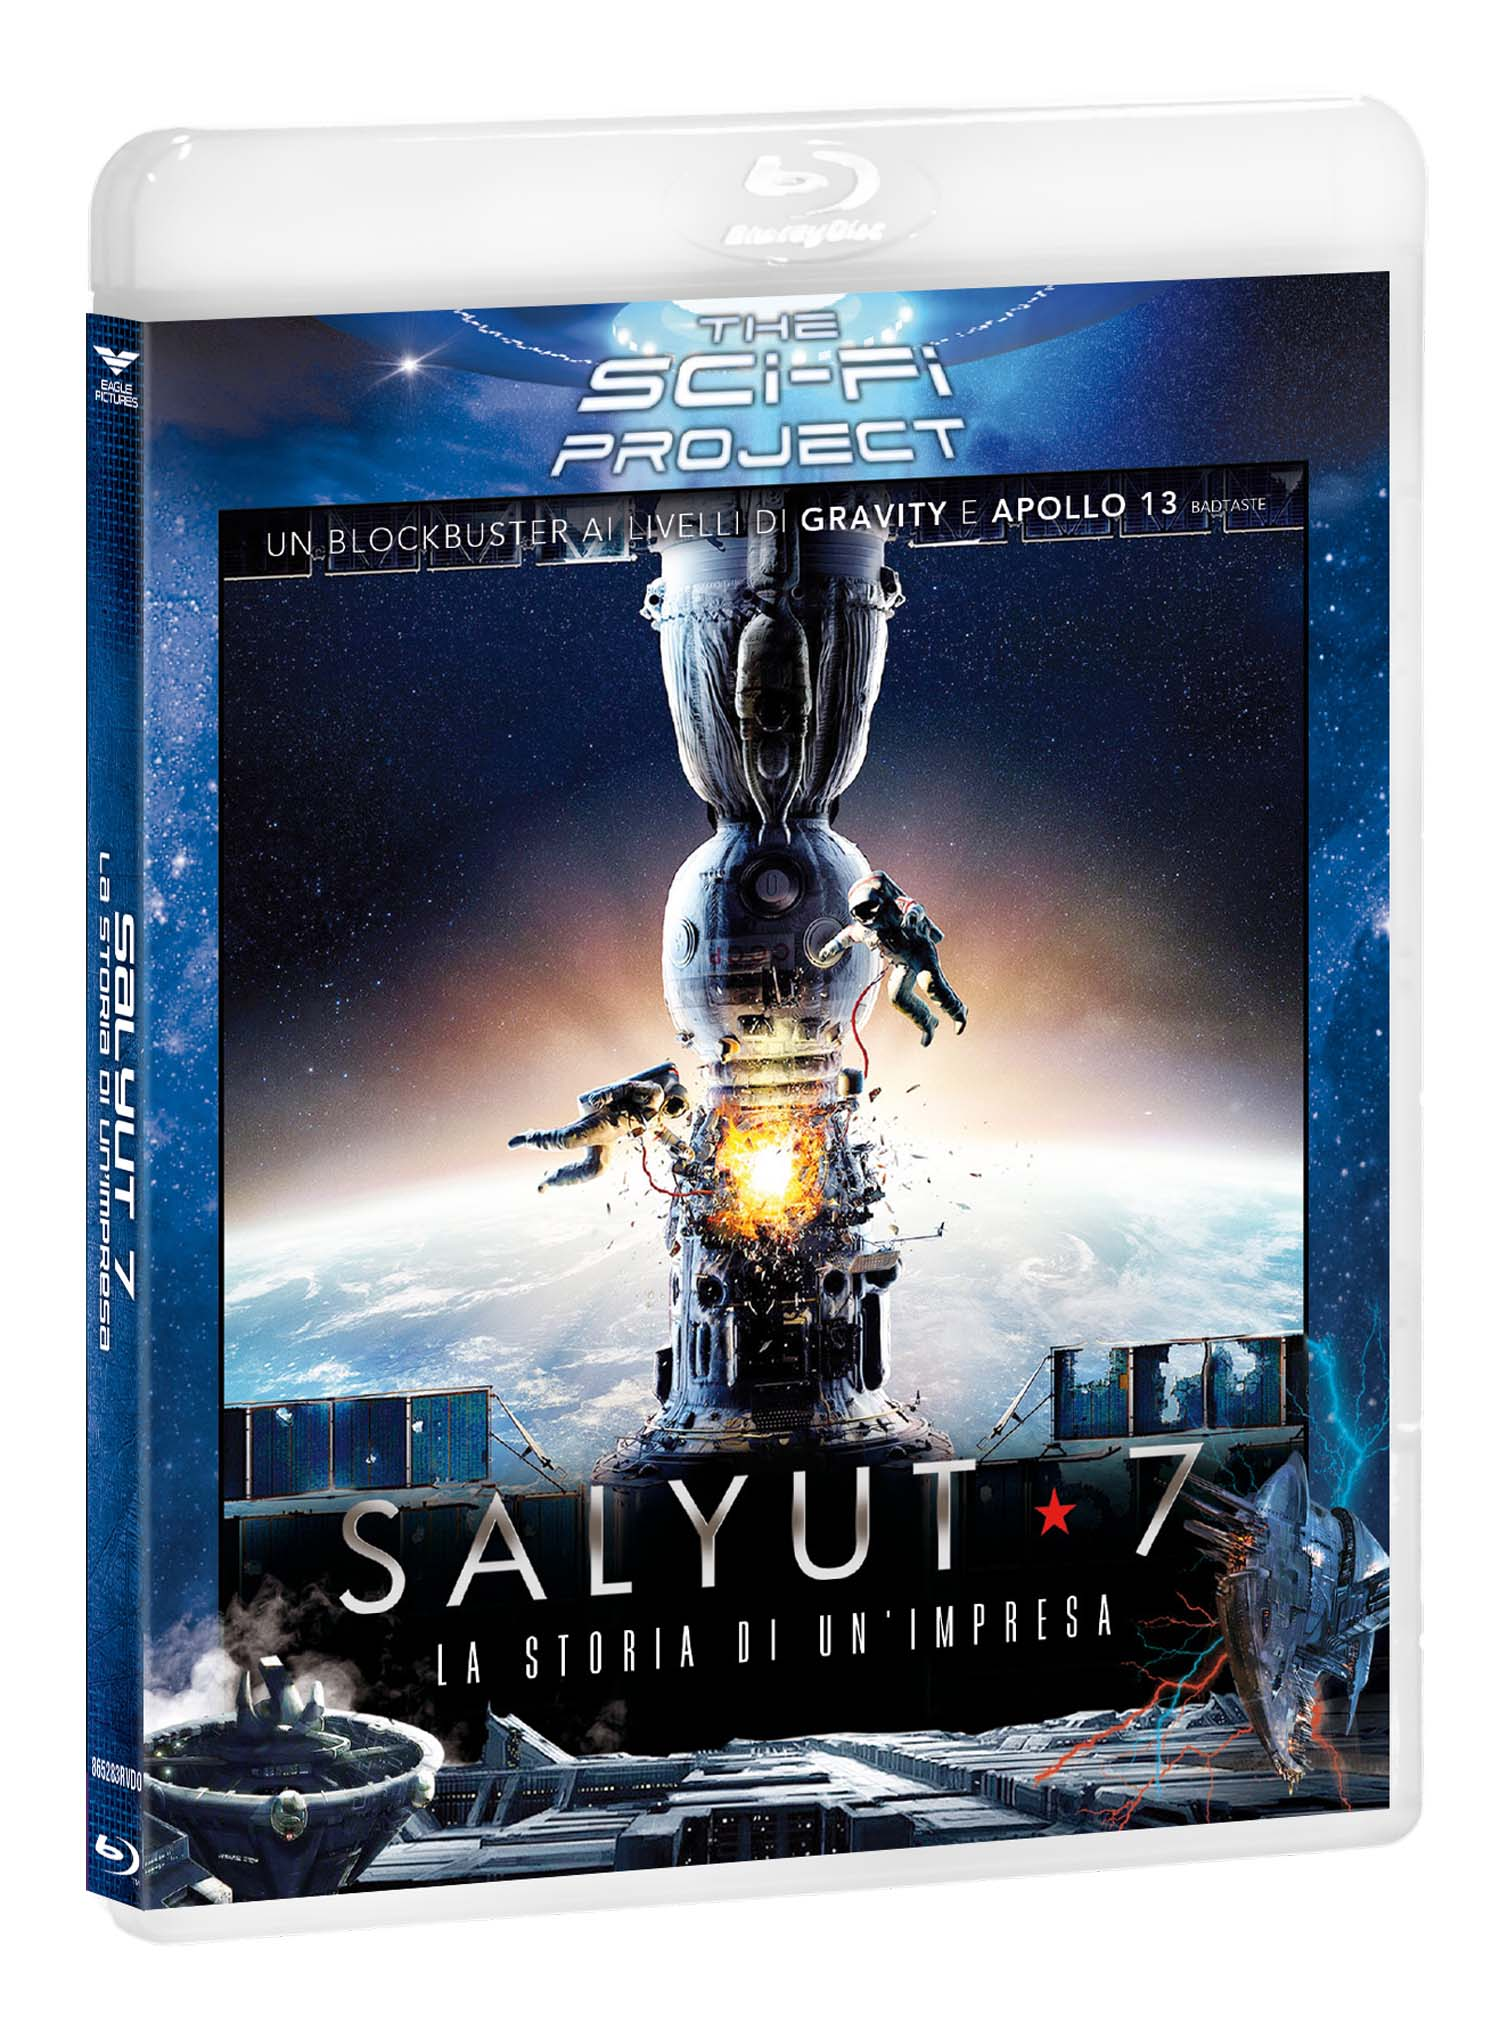 SALYUT 7 (SCI-FI PROJECT) - BLU RAY